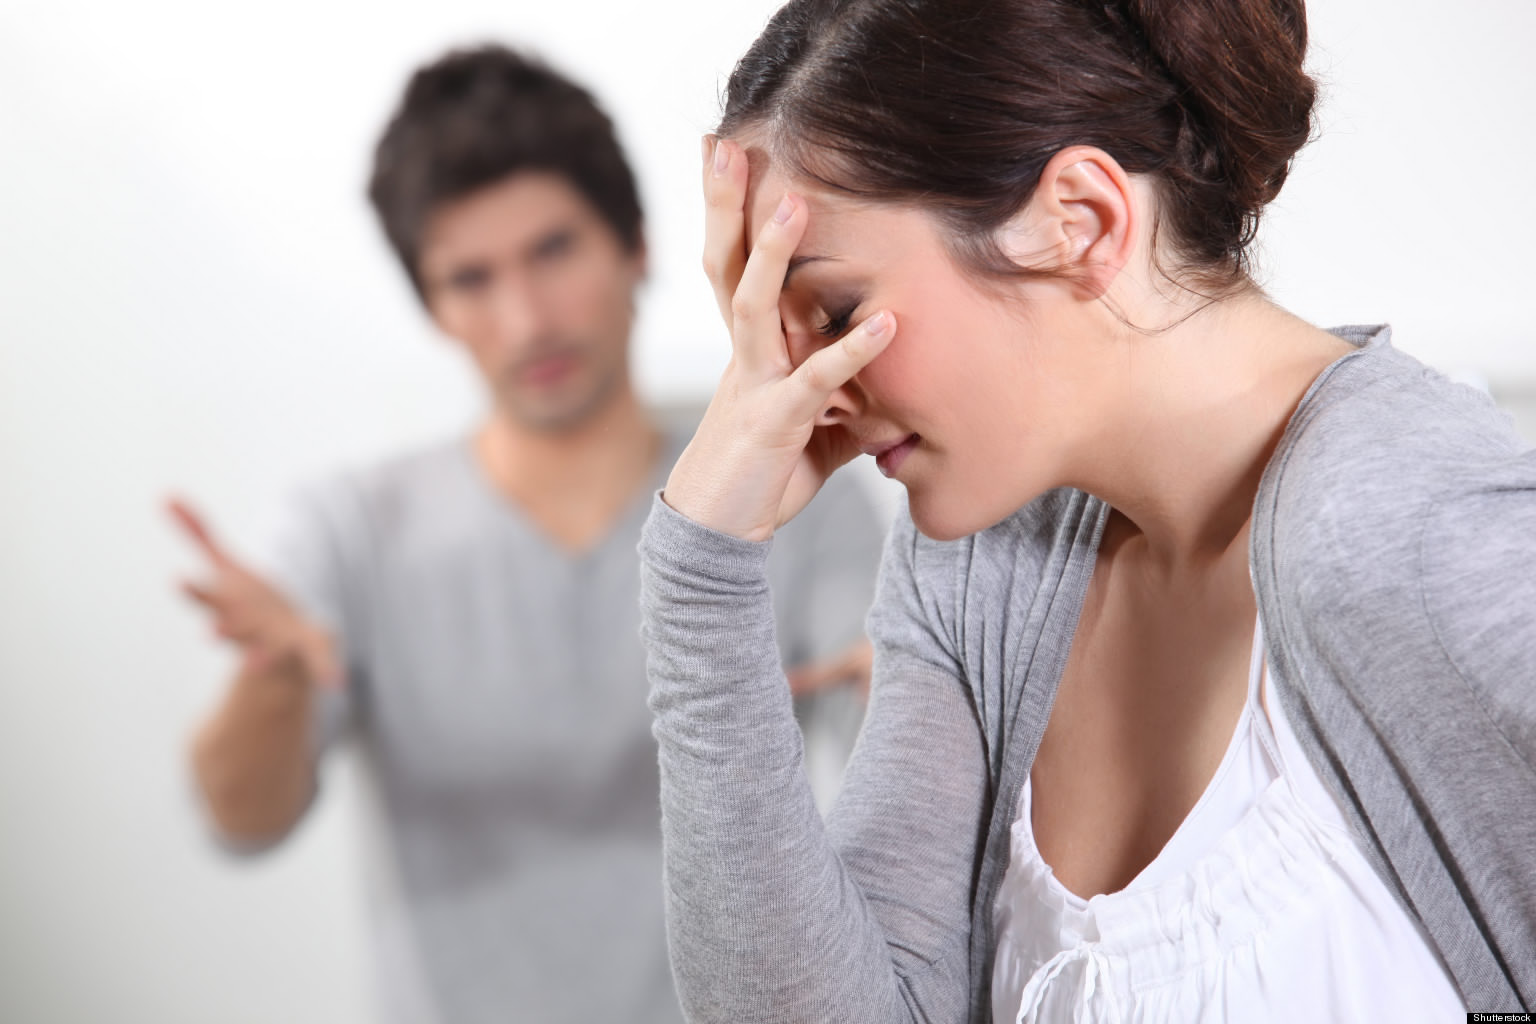 easons why women break up with men